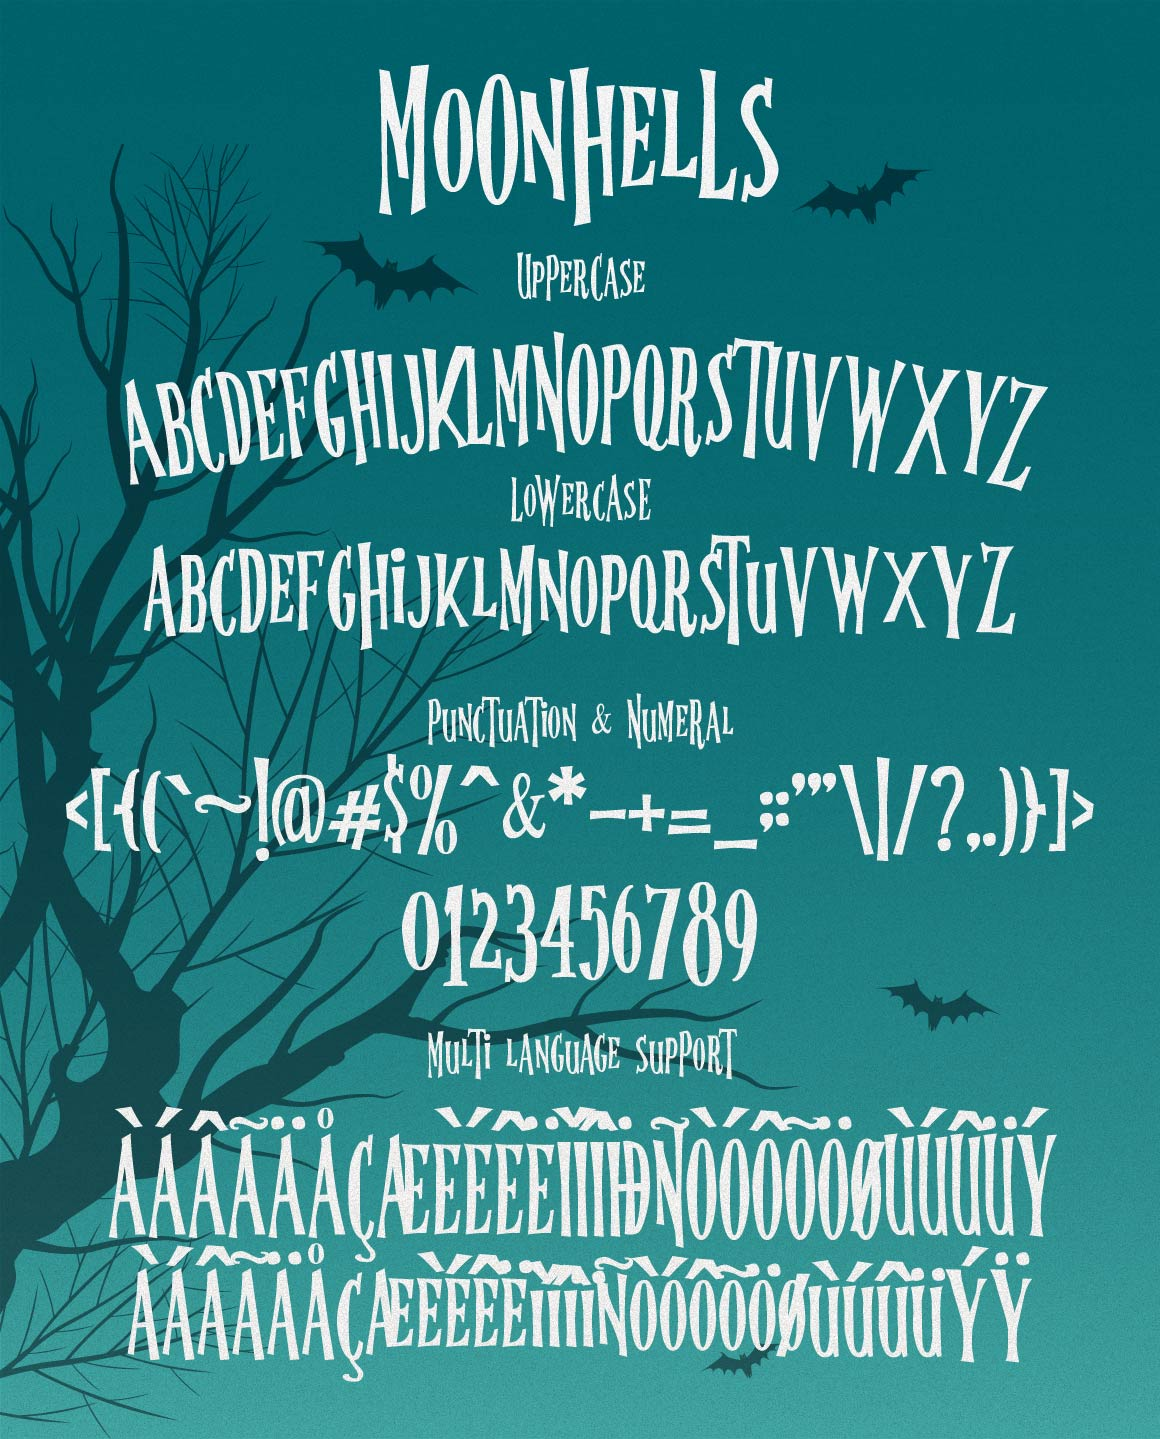 Moonhells Typeface example image 2